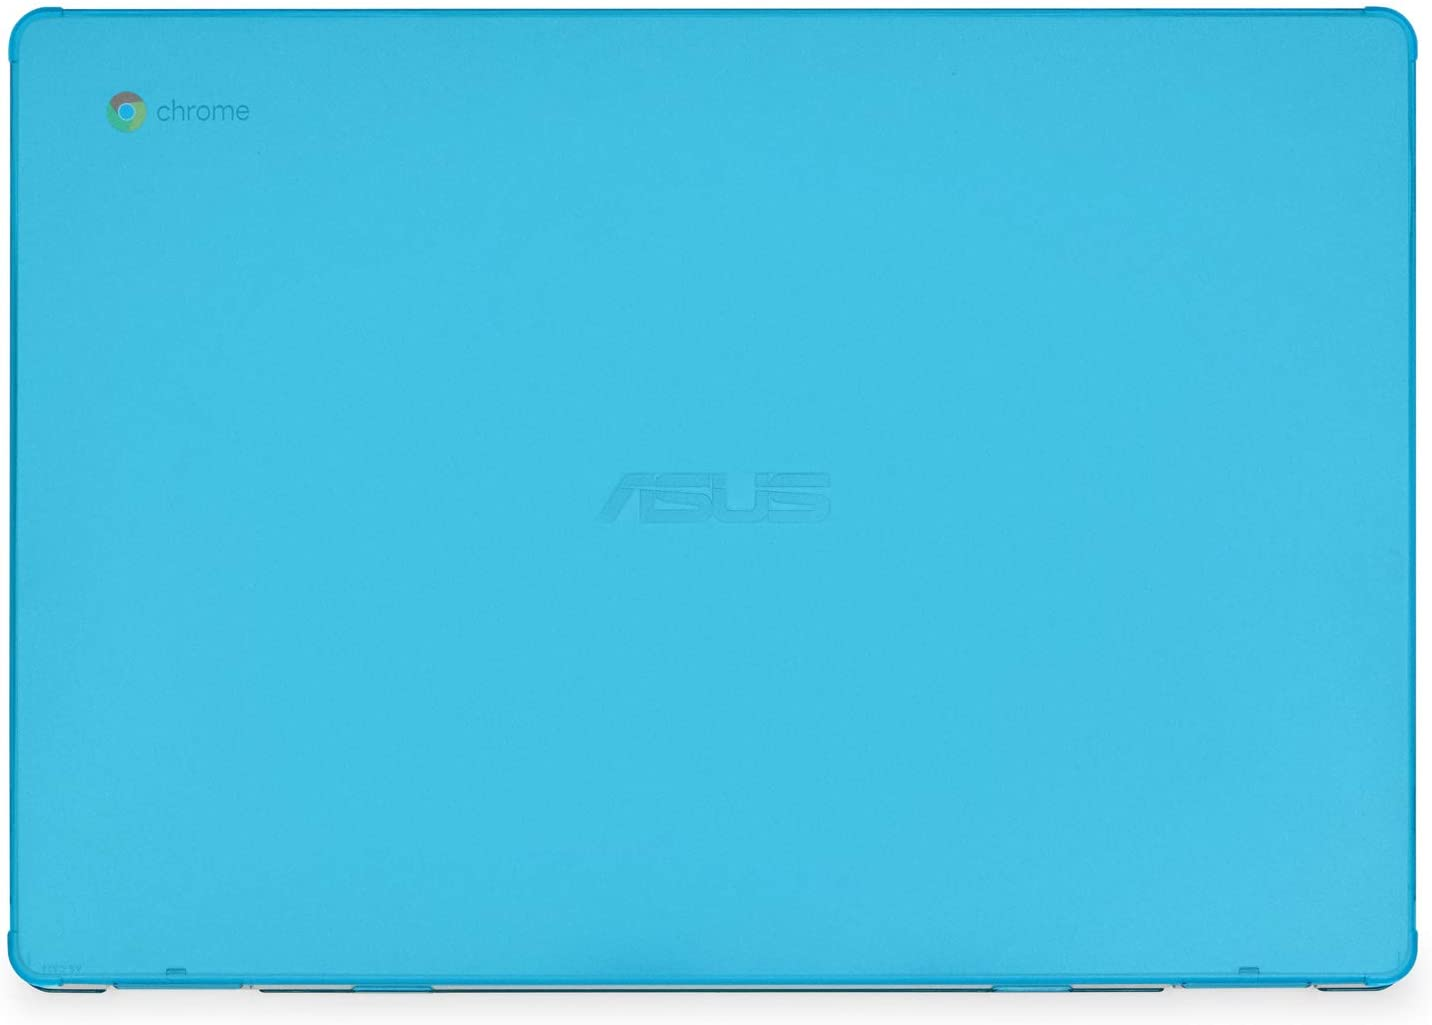 mCover Hard Shell Seattle Mall Case for Chromebook ASUS C523NA 70% OFF Outlet Seri 15.6-inch